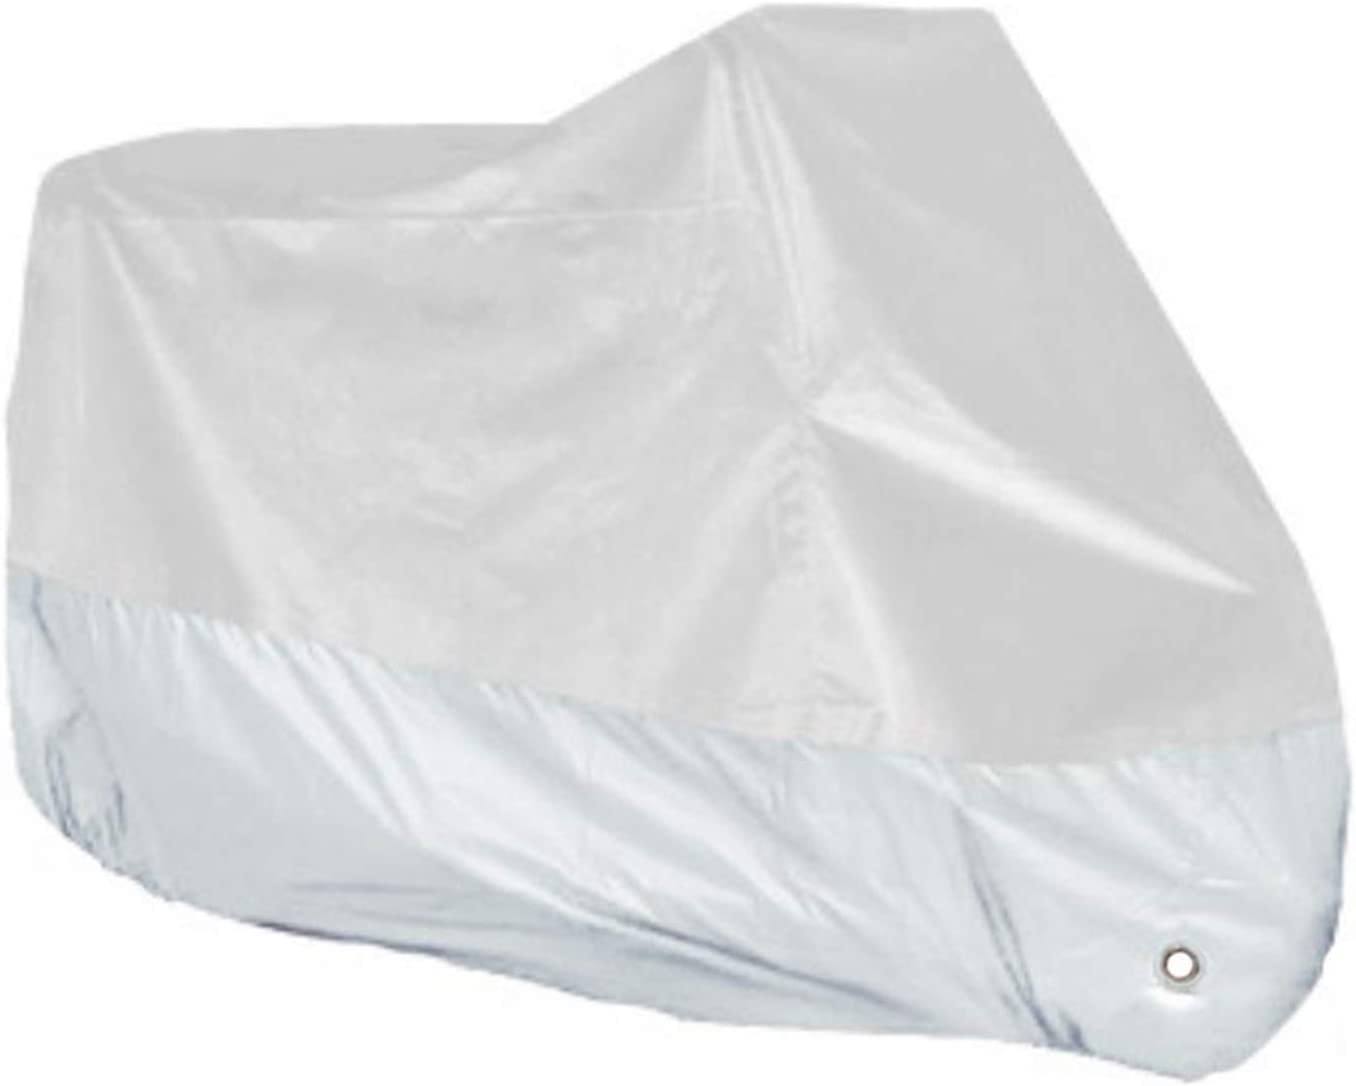 HOTLIGHT All stores are sold Full Motorcycle Cover Max 90% OFF Compatible with H Motorbike